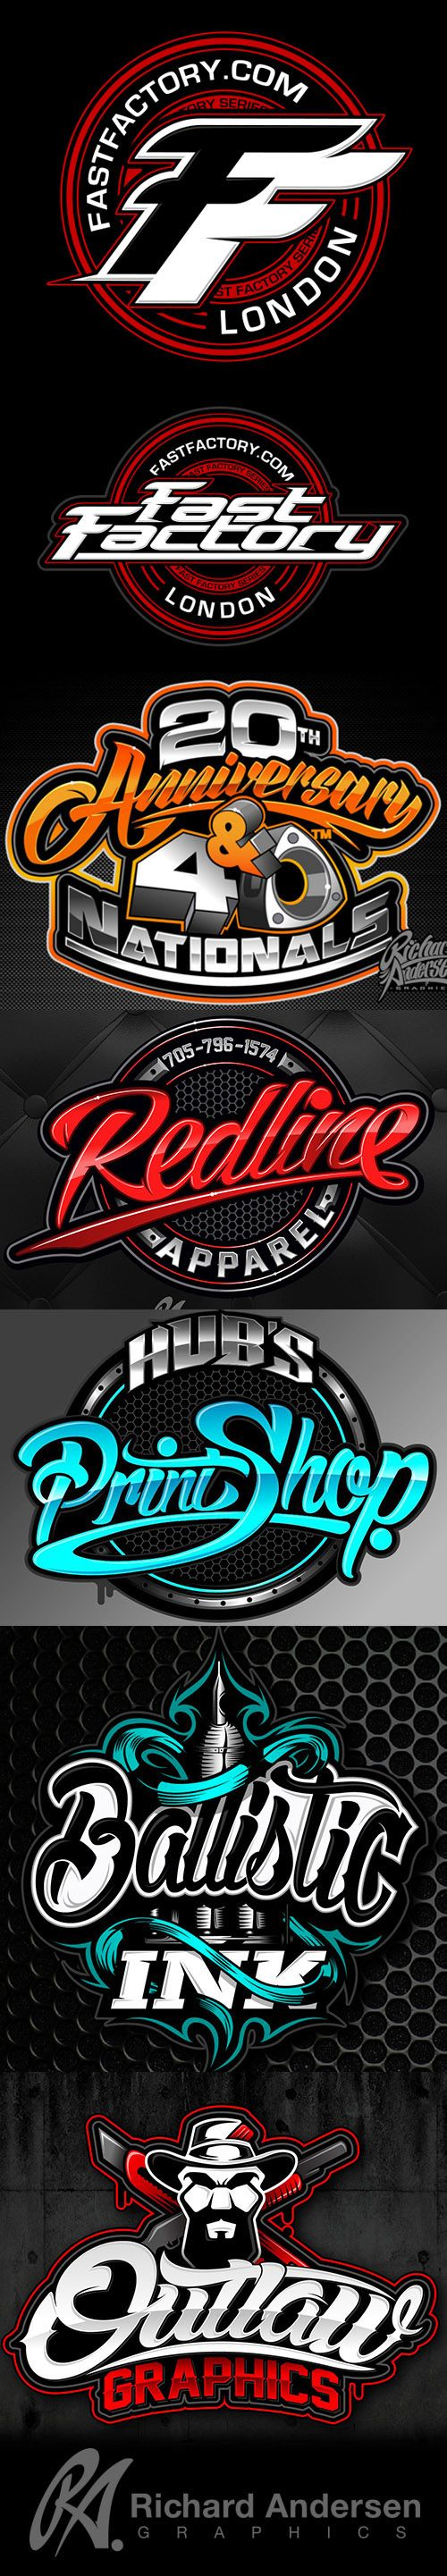 RA Typography Logo design